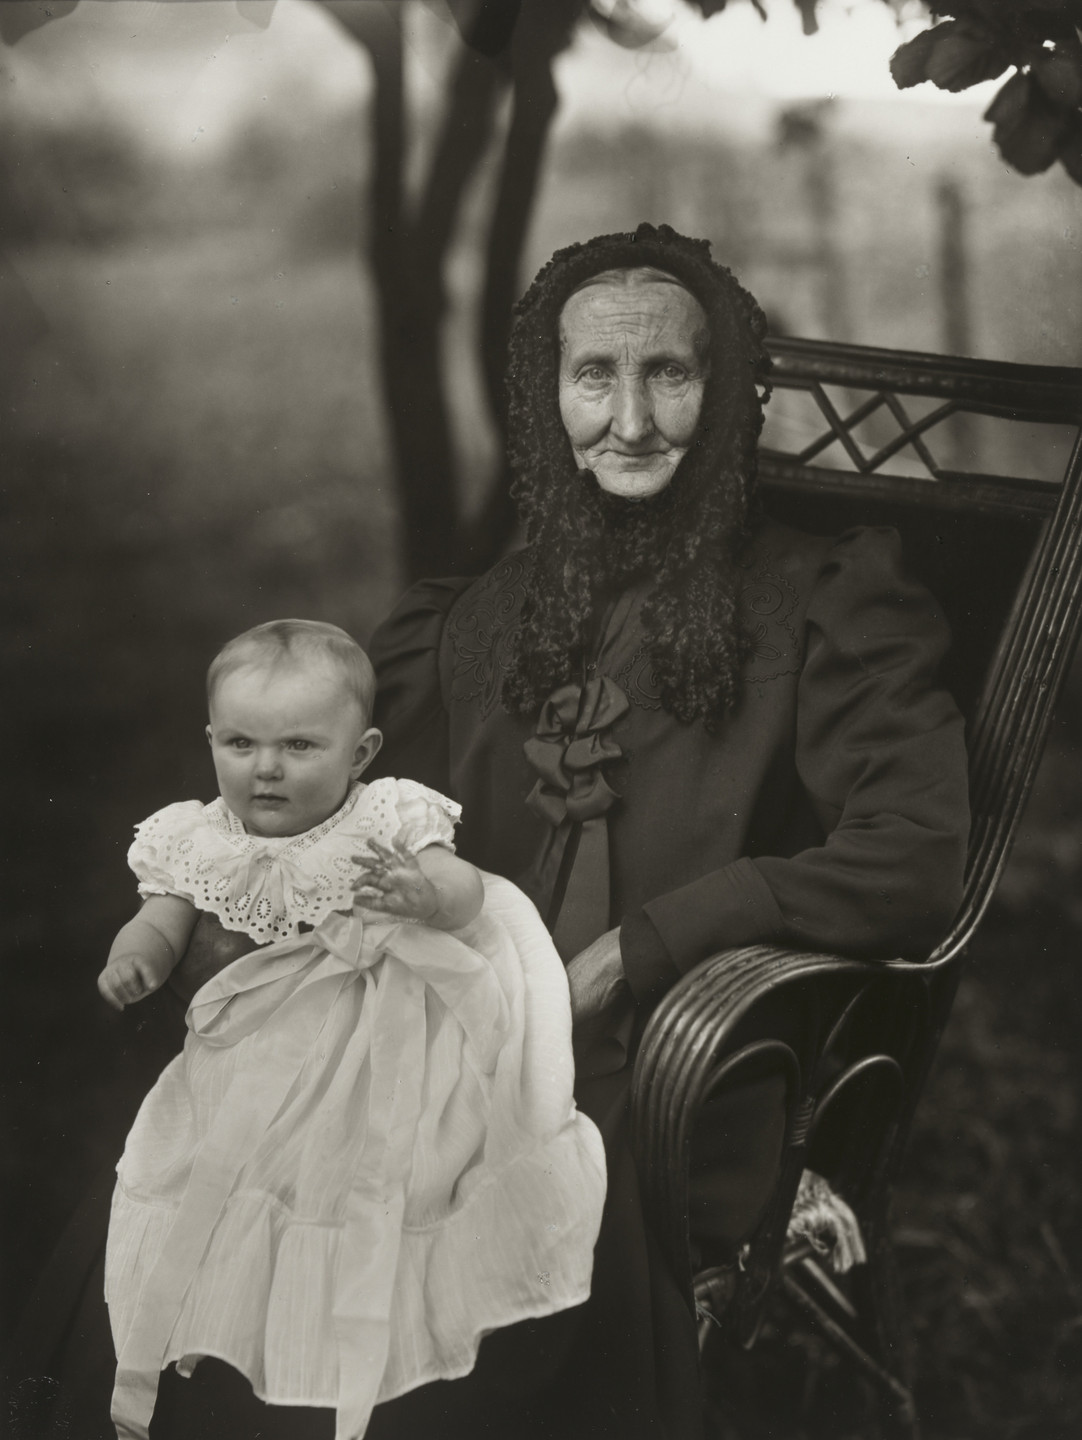 August Sander. Grandmother and Grandchild. c. 1914